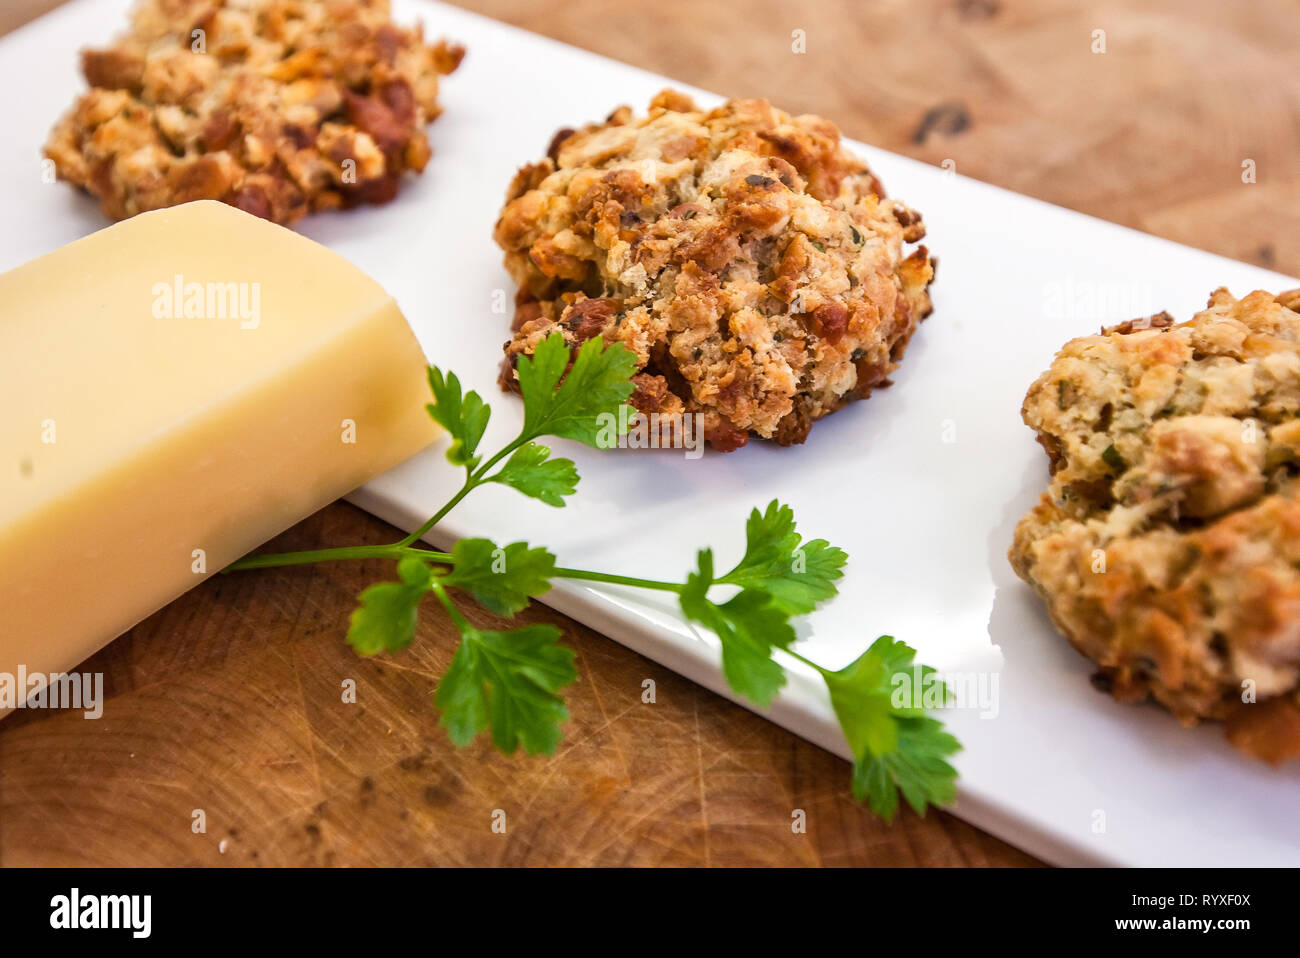 Cheesy bread dumplings with herbs from Austria Stock Photo